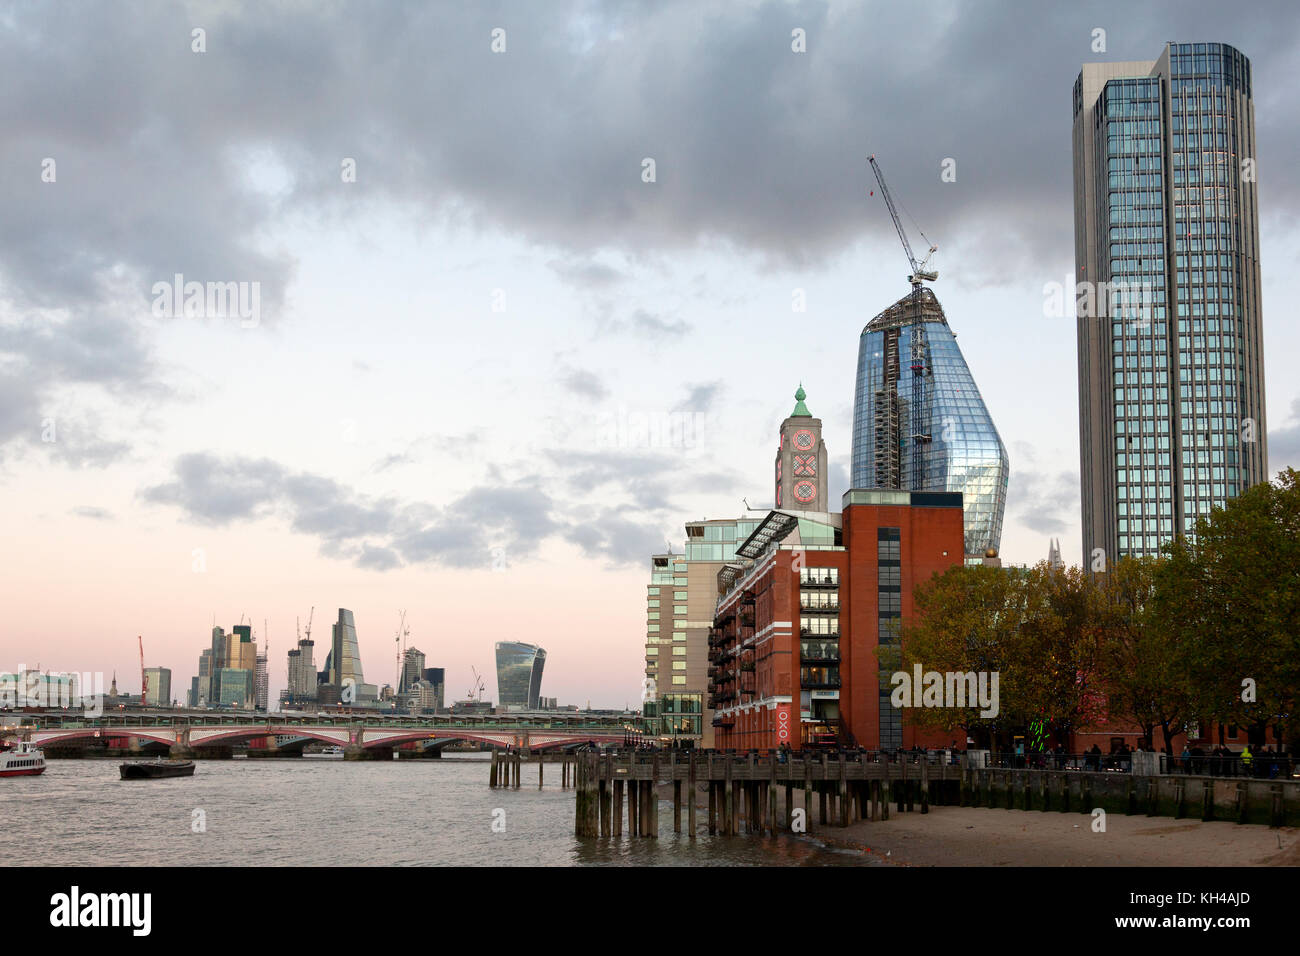 View of Blackfriars Bridge and buildings along the River Thames, London - Stock Image